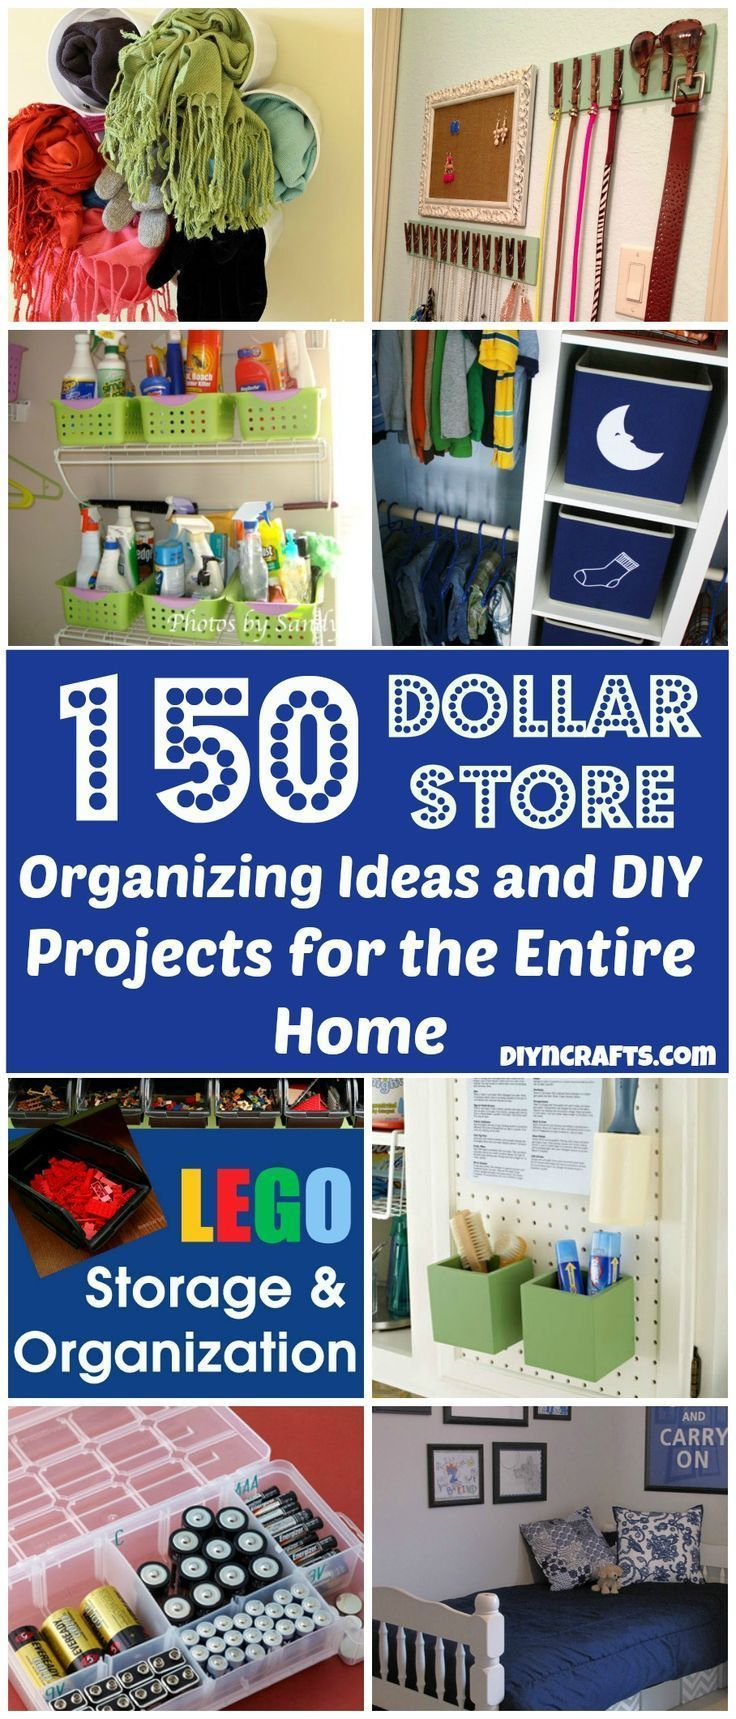 150 Dollar Store Organizing Ideas and Projects for the Entire Home - brilliantly frugal ideas to organize your entire life with dollar store items!